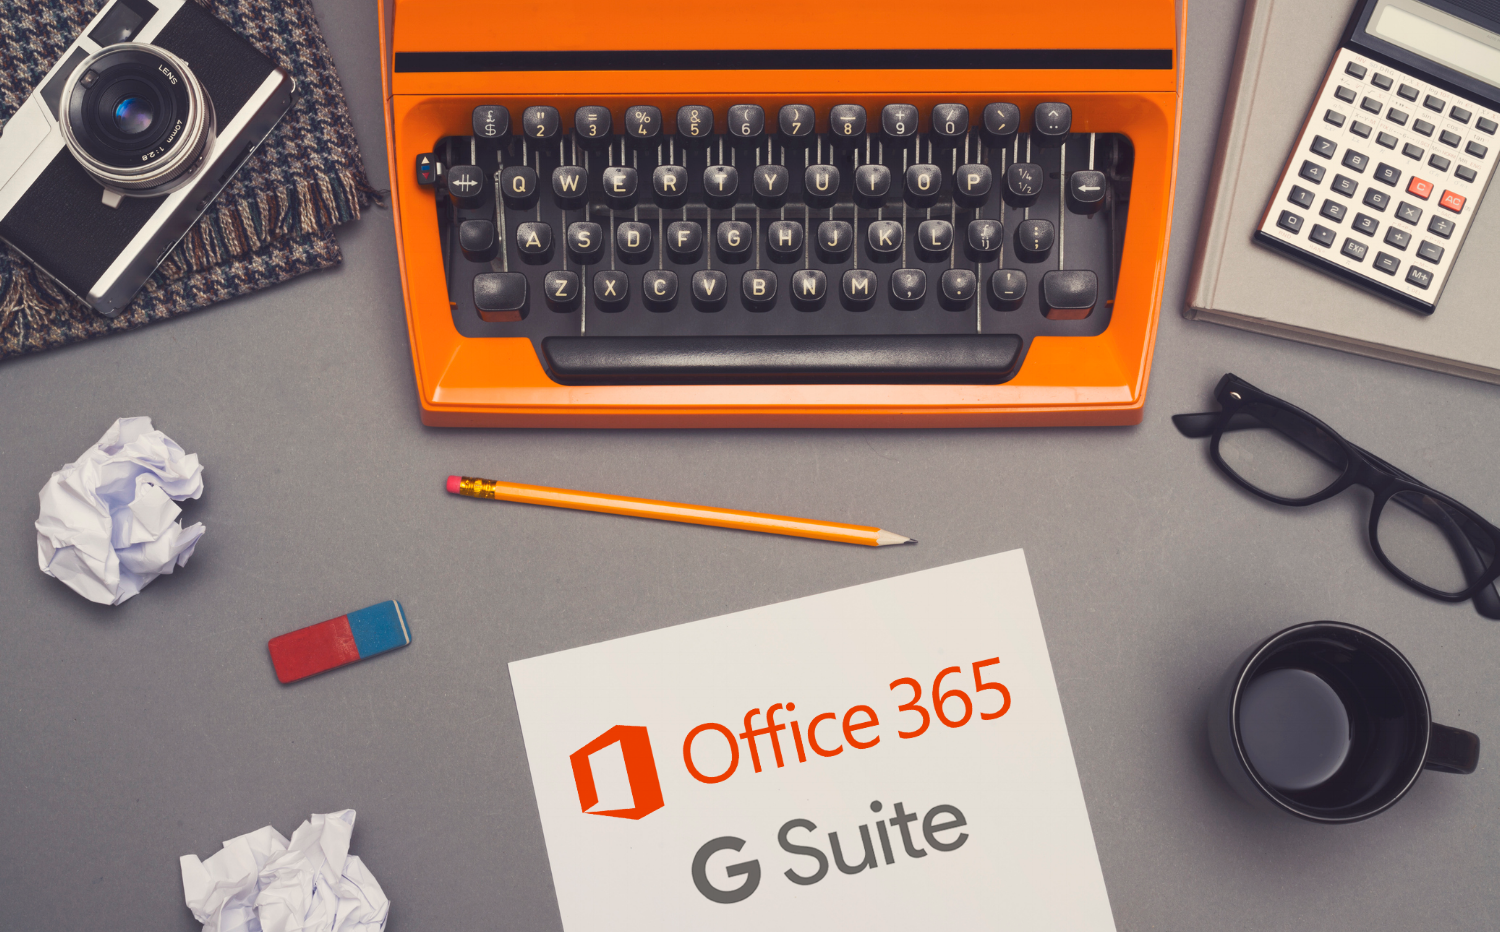 OFFICE 365 VS G SUITE (2018) - WHICH IS BEST FOR YOUR BUSINESS?